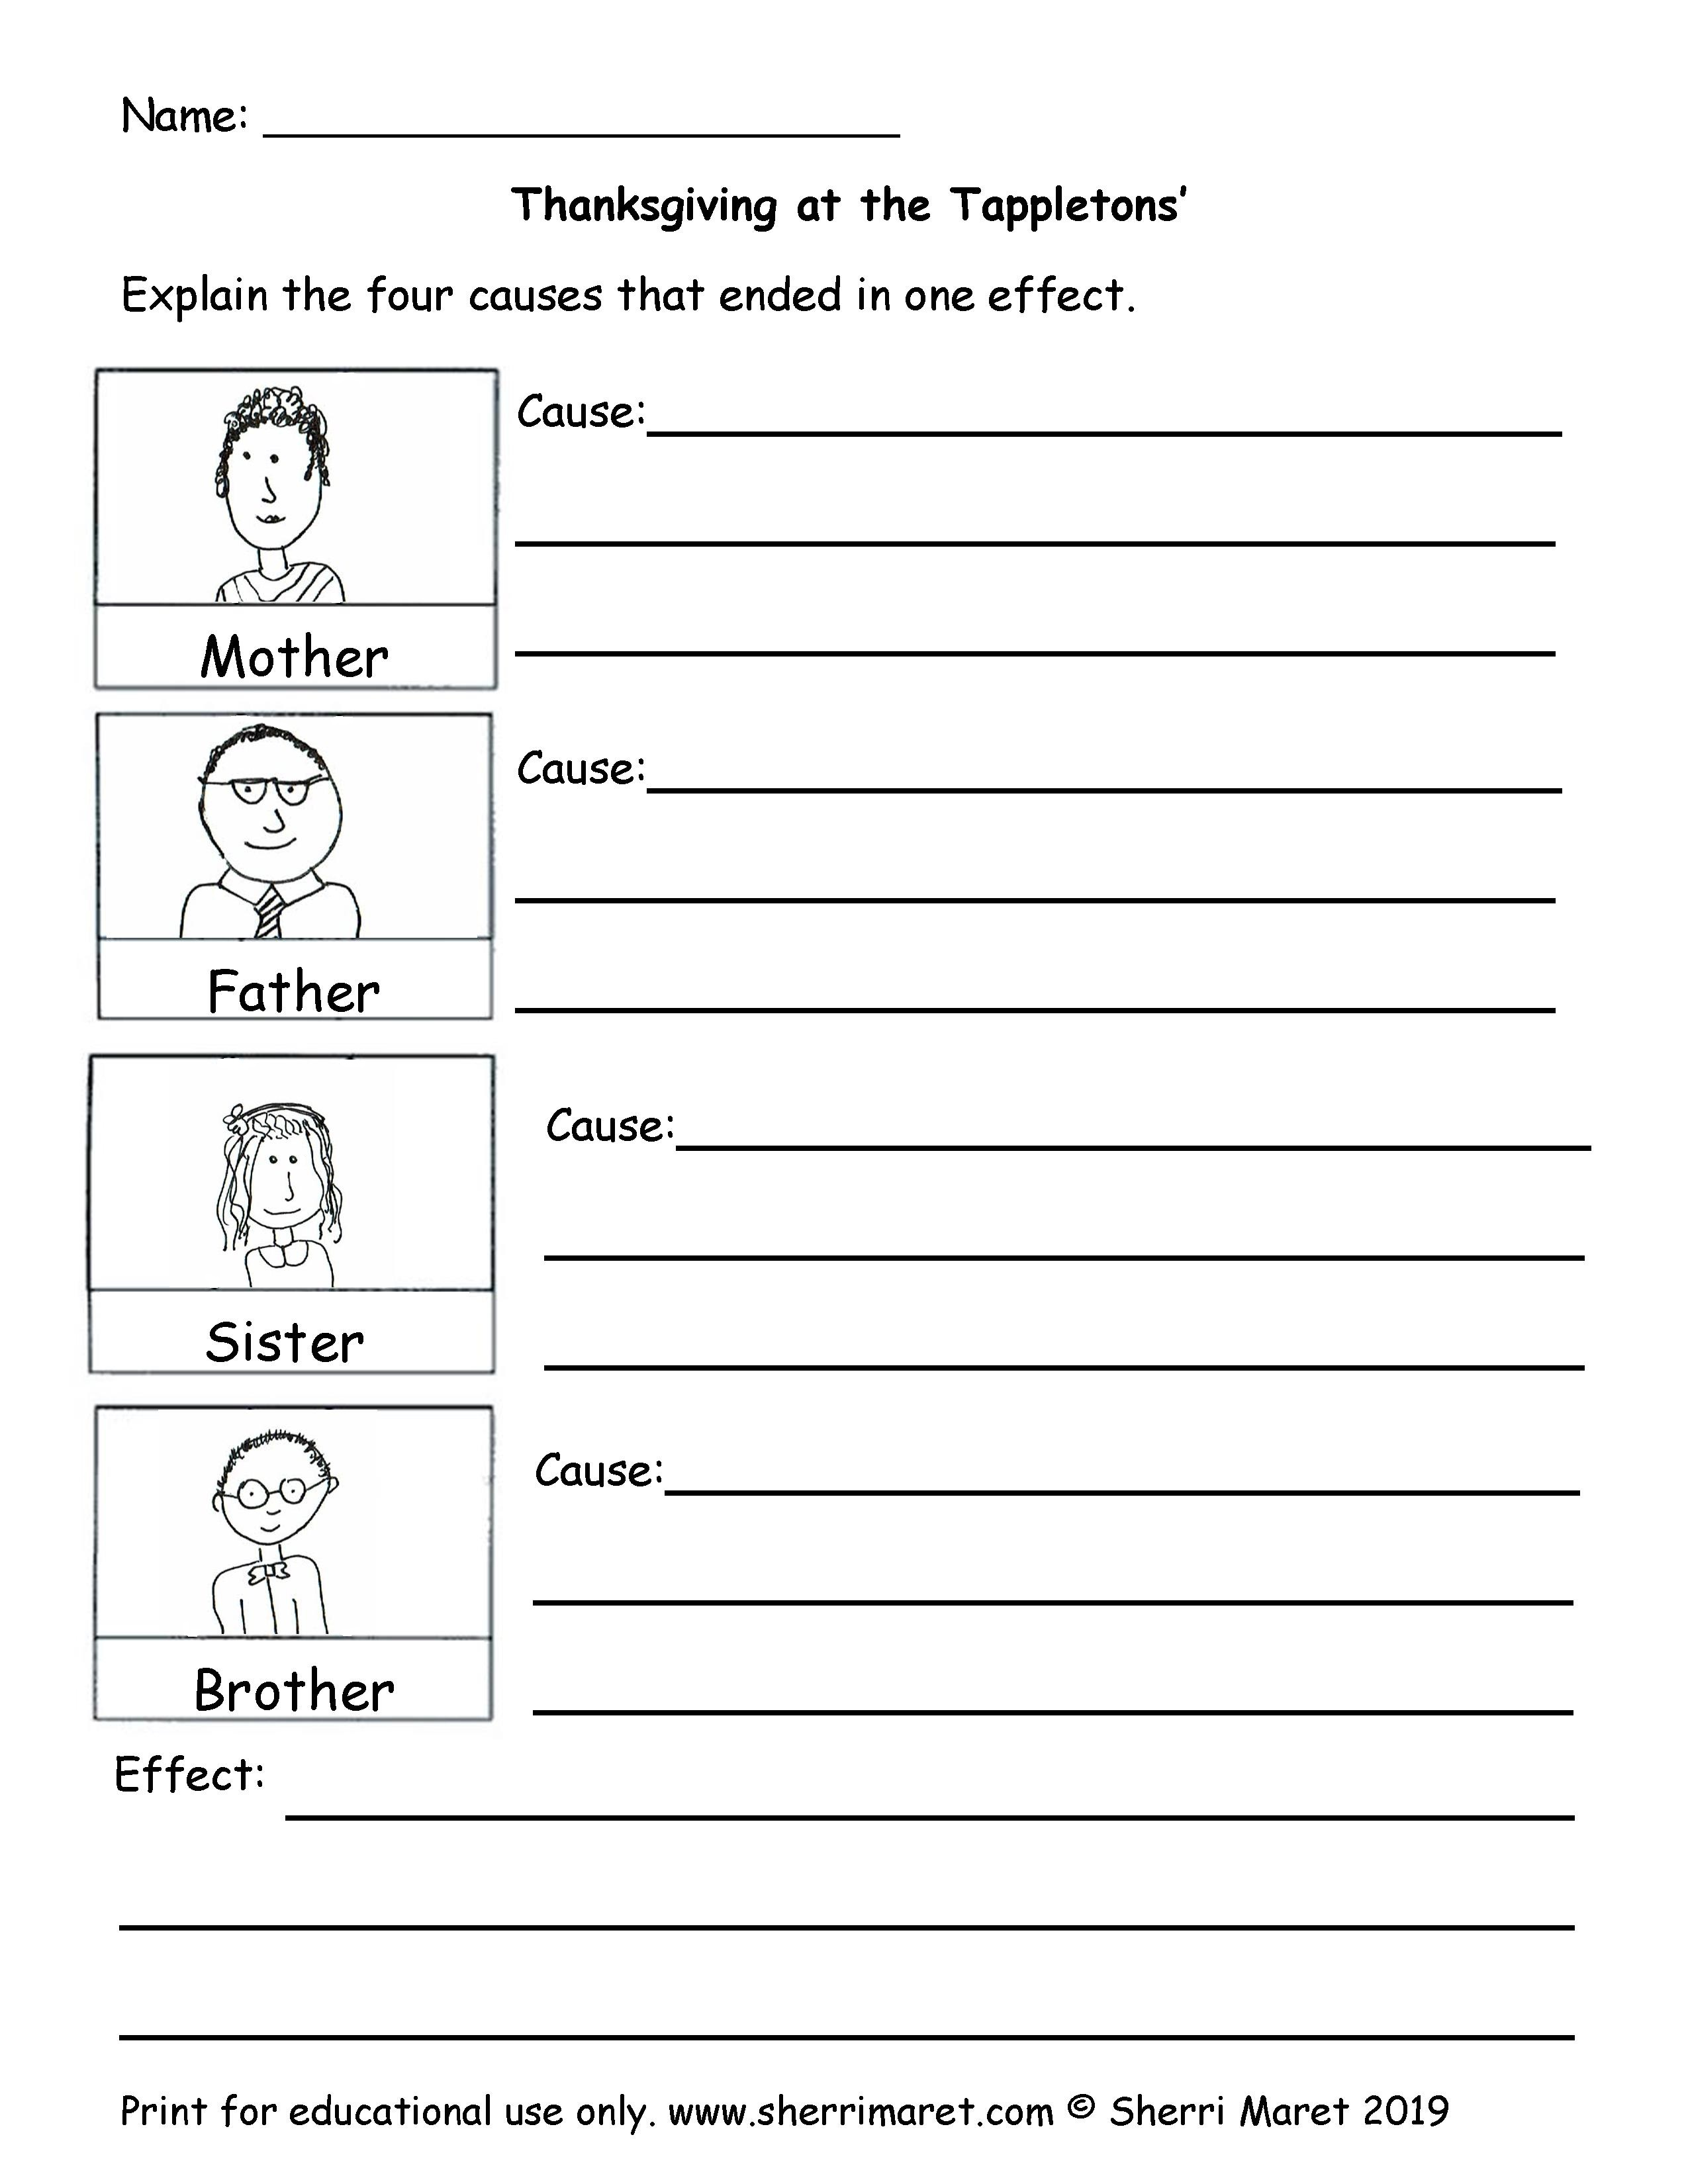 Extra Ideas For Elementary